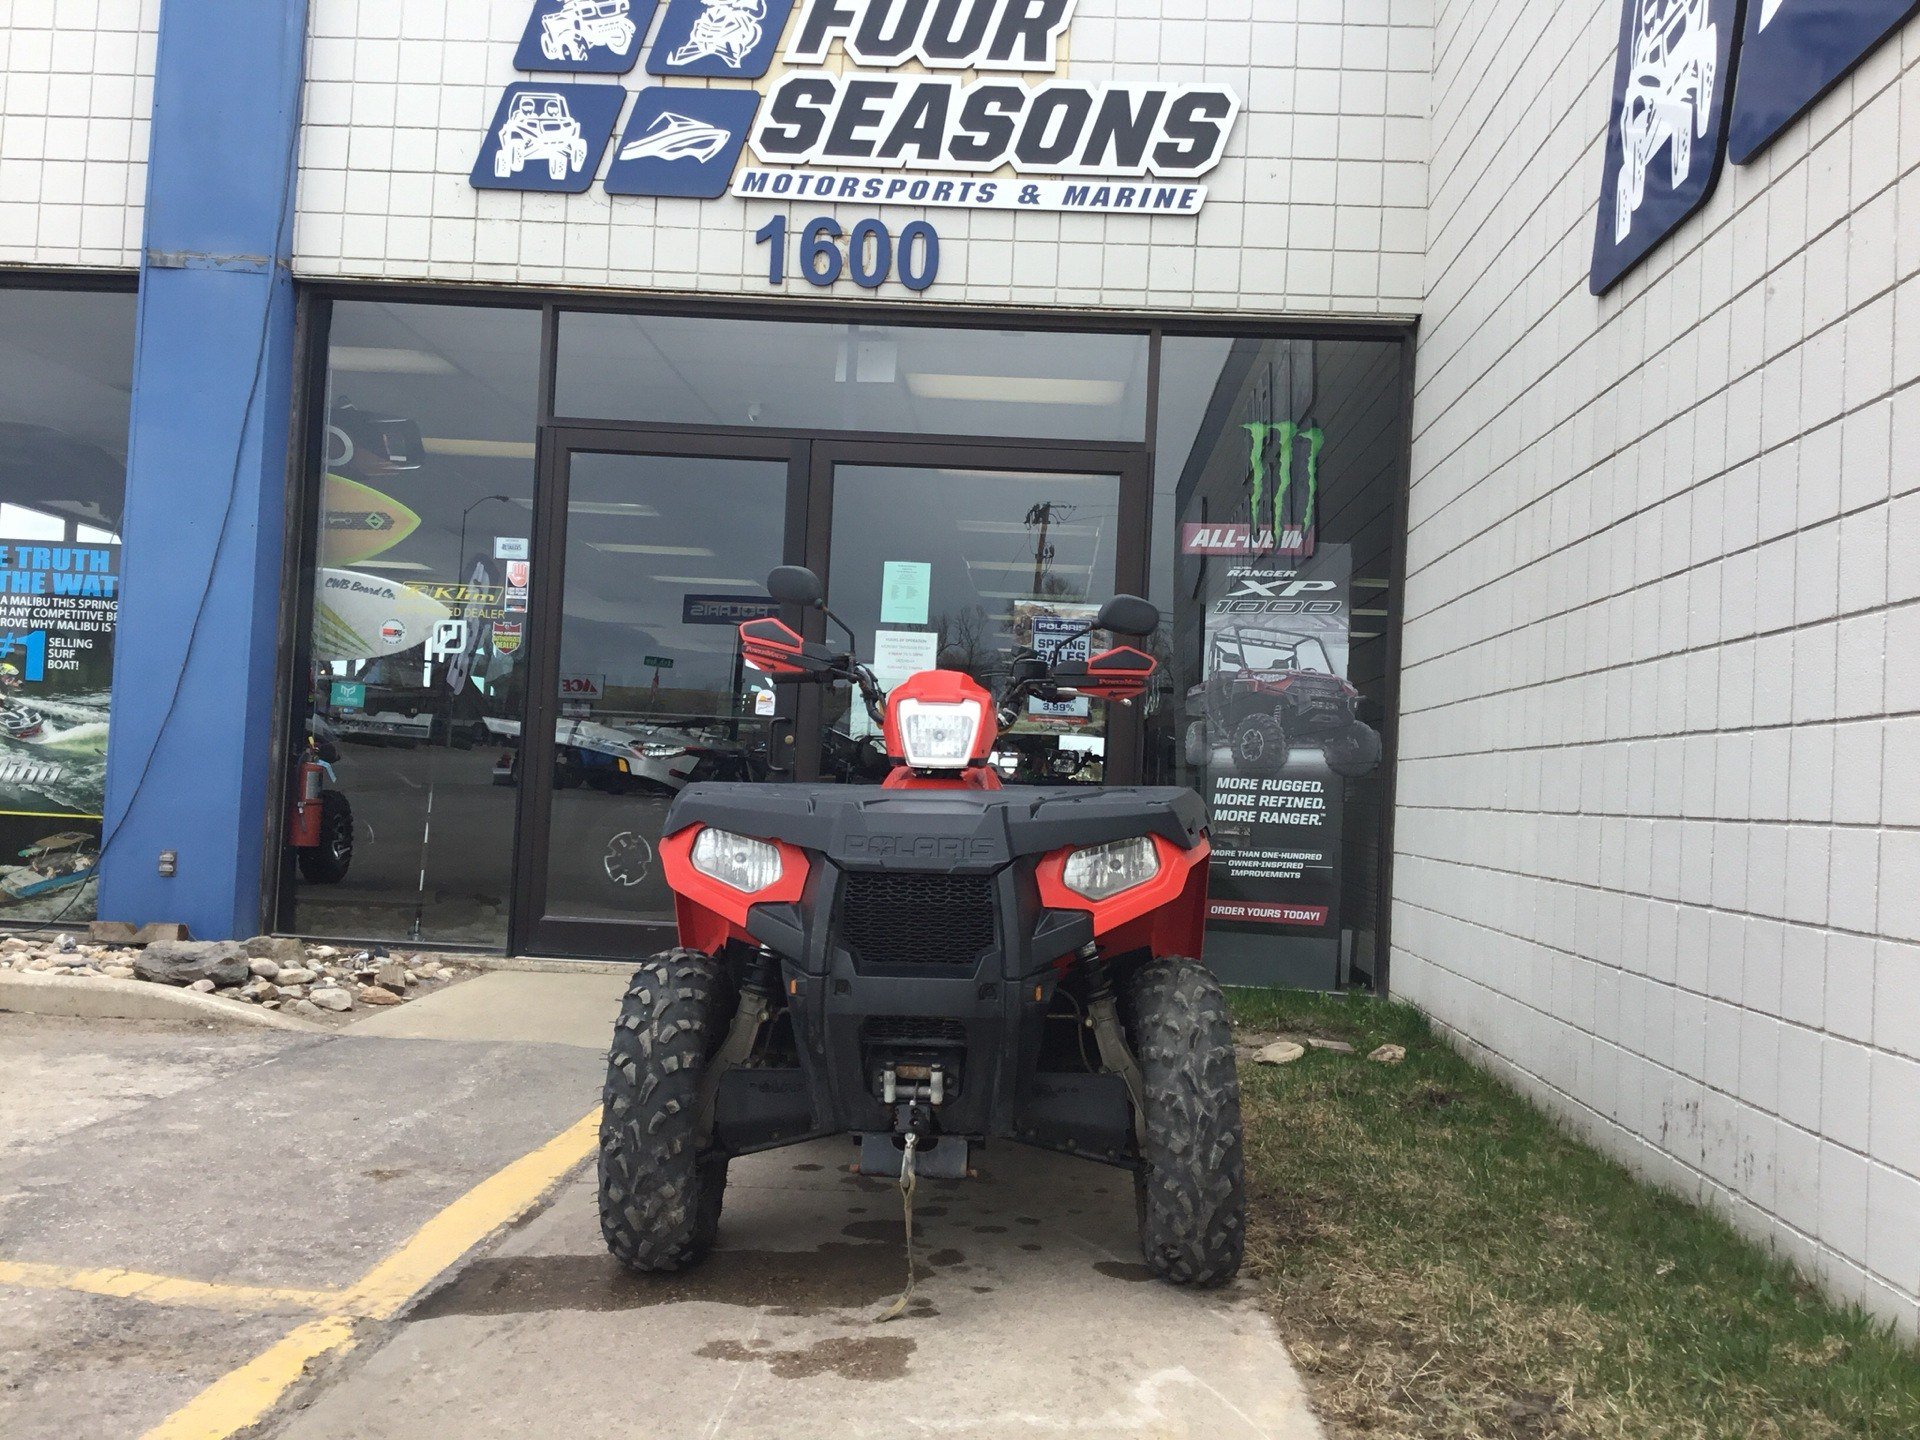 2013 Polaris Sportsman® 500 H.O. in Rapid City, South Dakota - Photo 3